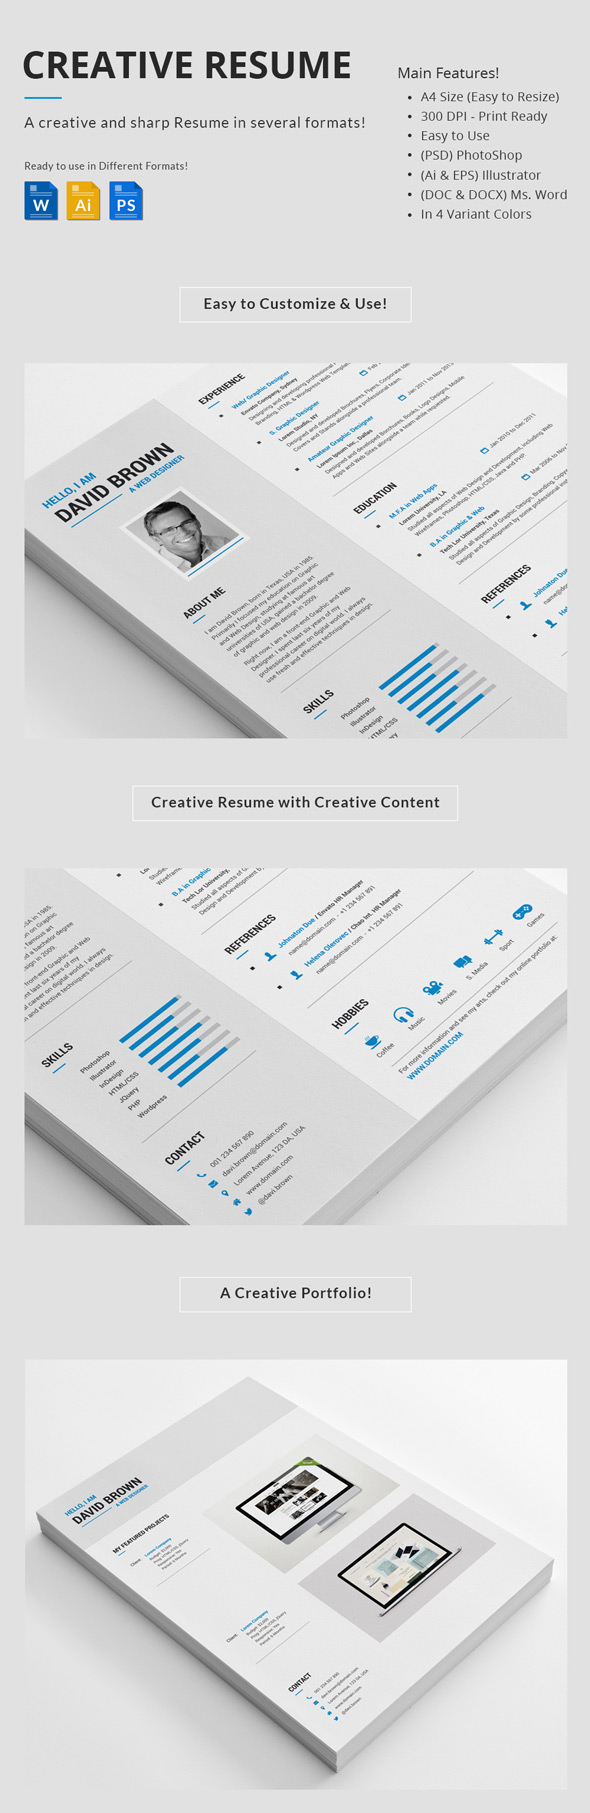 professional creative resume set - Creative Resume Formats